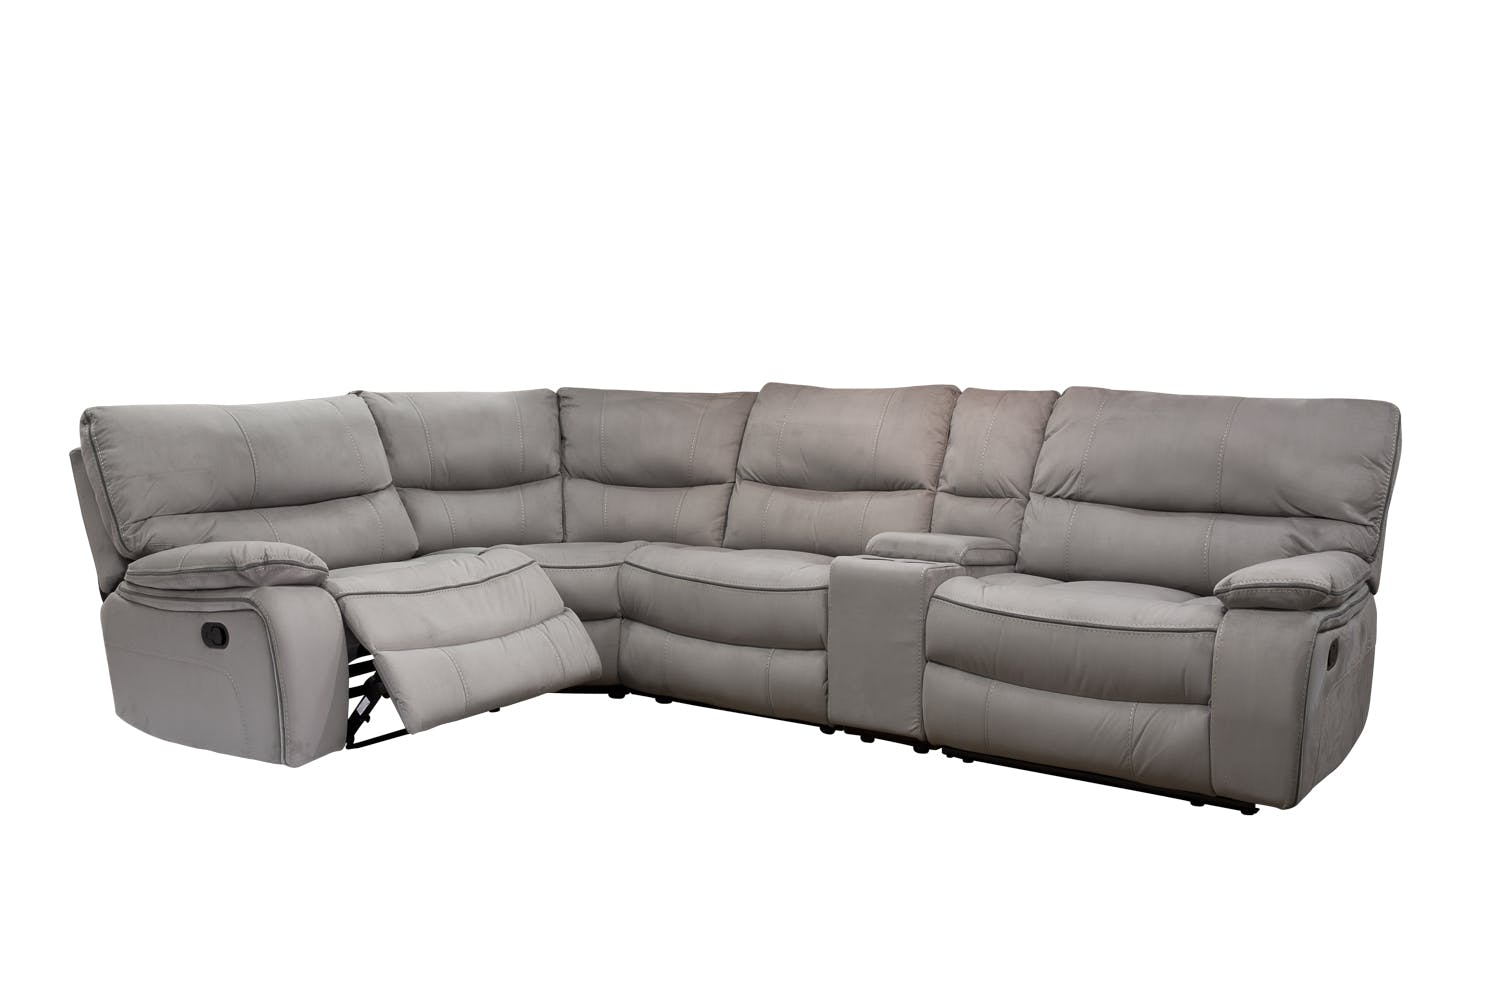 Lattina Corner Recliner Sofa